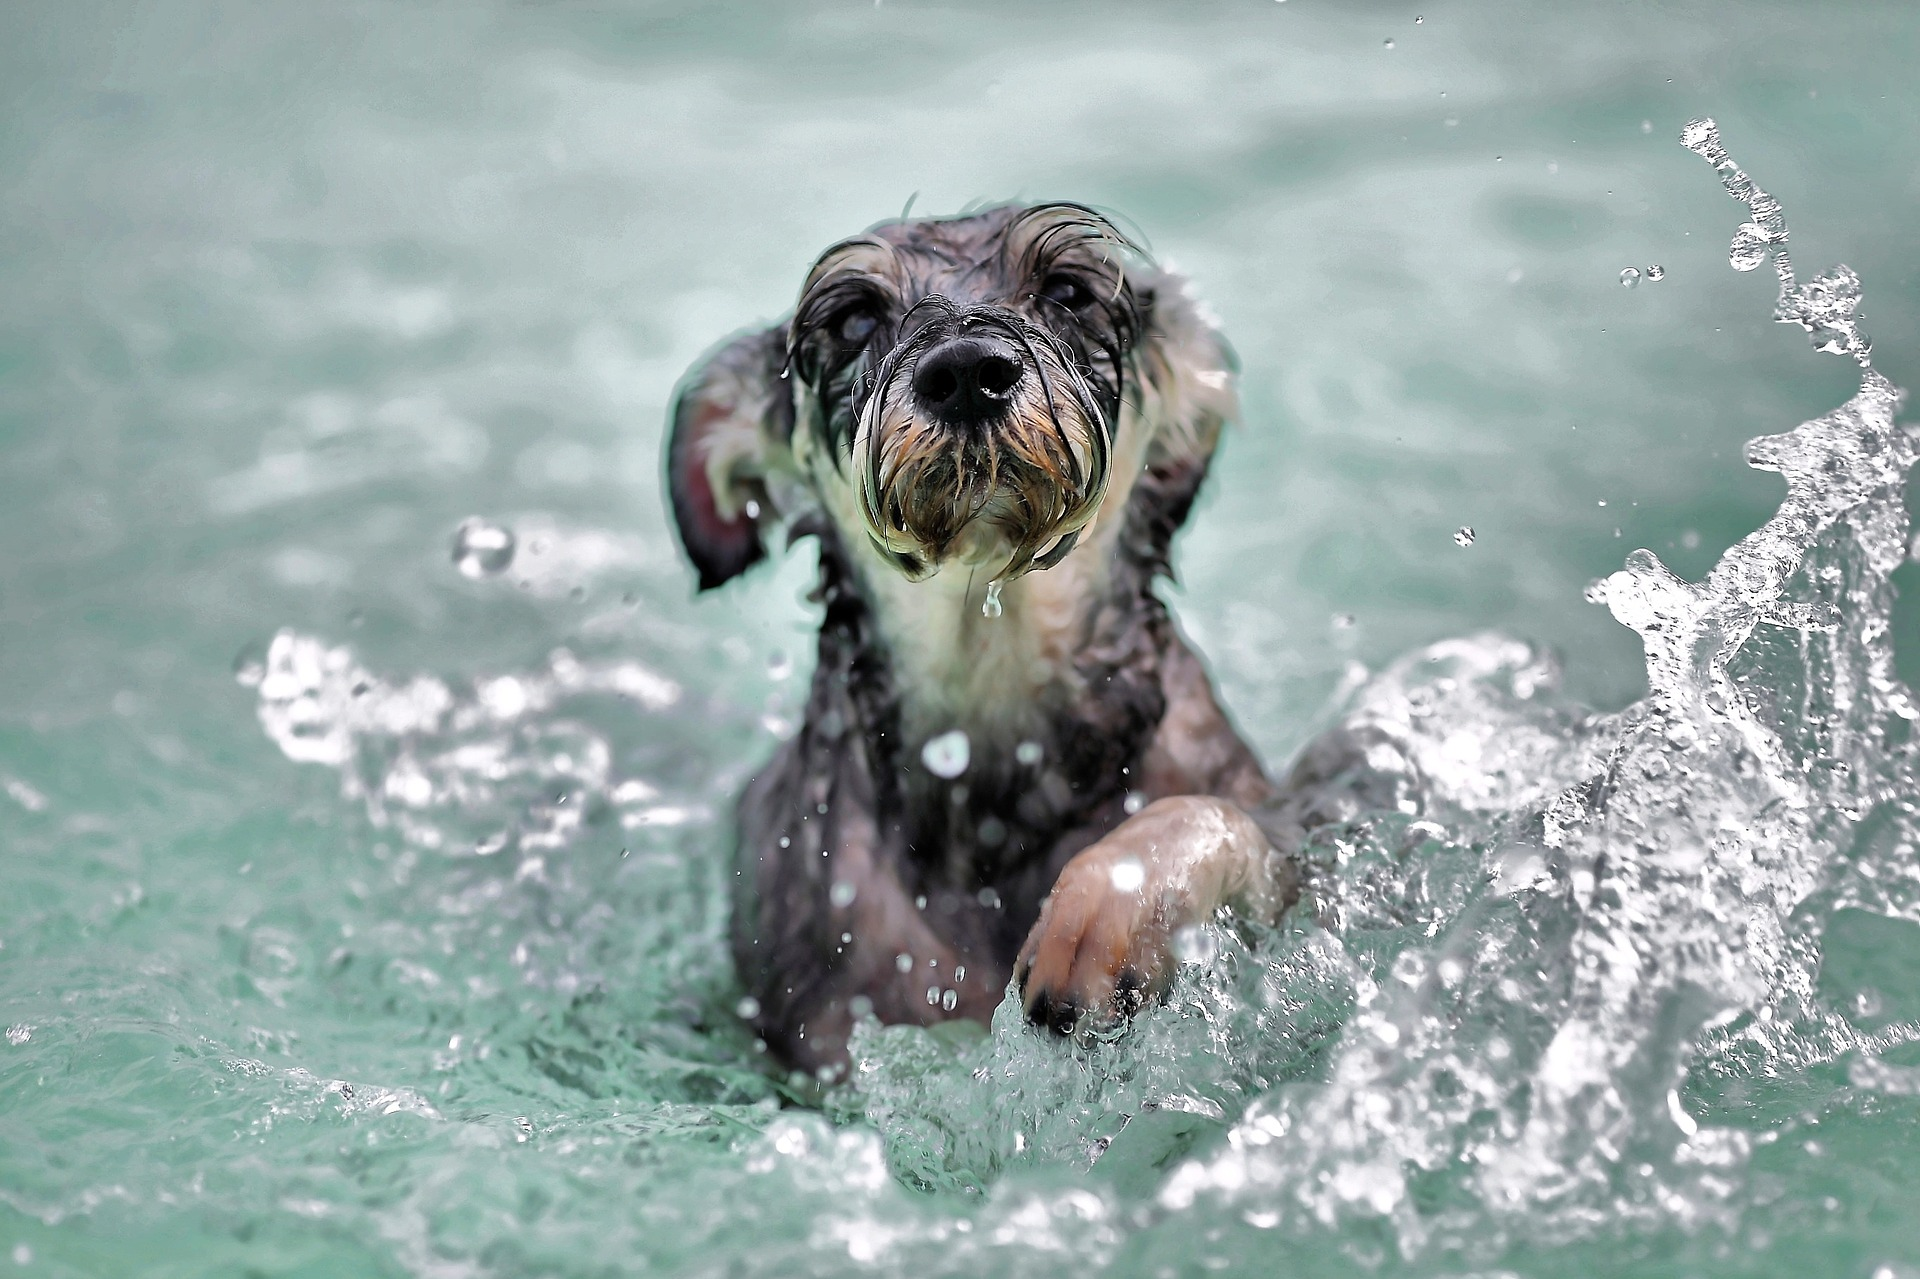 Swimming is a great way to keep a dog cool in the summer